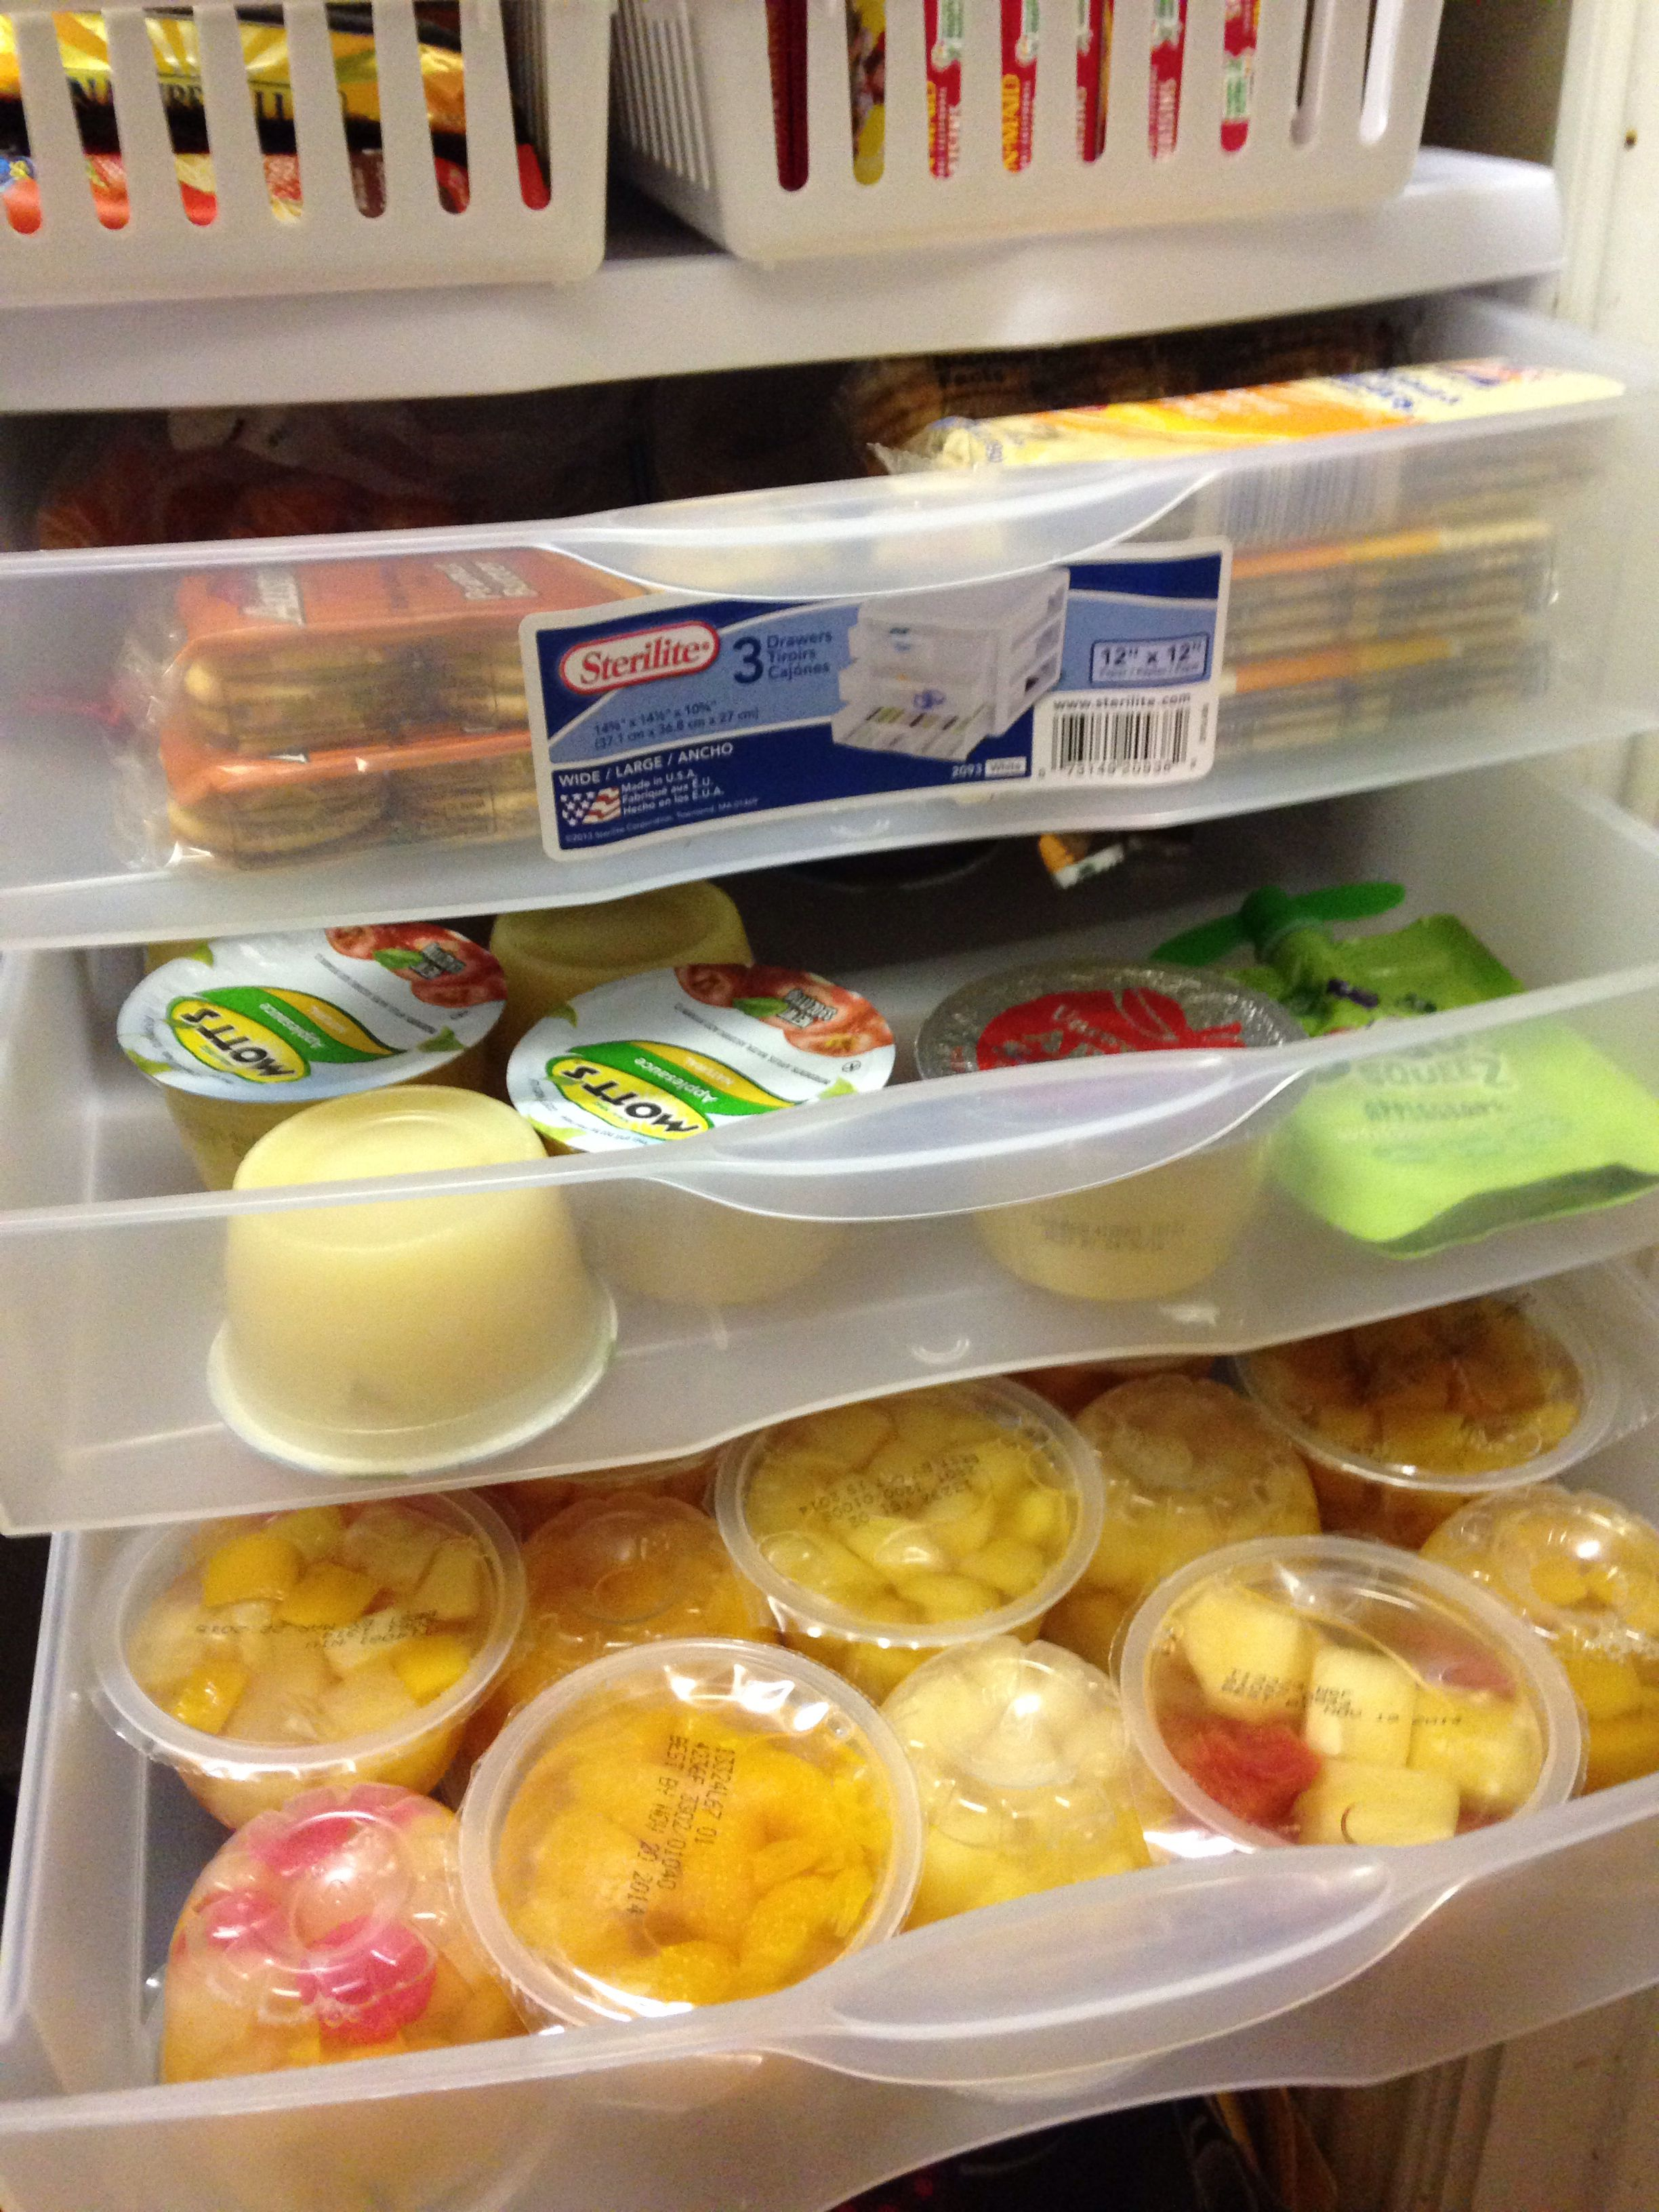 3-drawer plastic organizers are the perfect size to store fruit cups, applesauce, & other school snacks.   Makes it super easy for the kids to grab a snack or help pack their lunches!